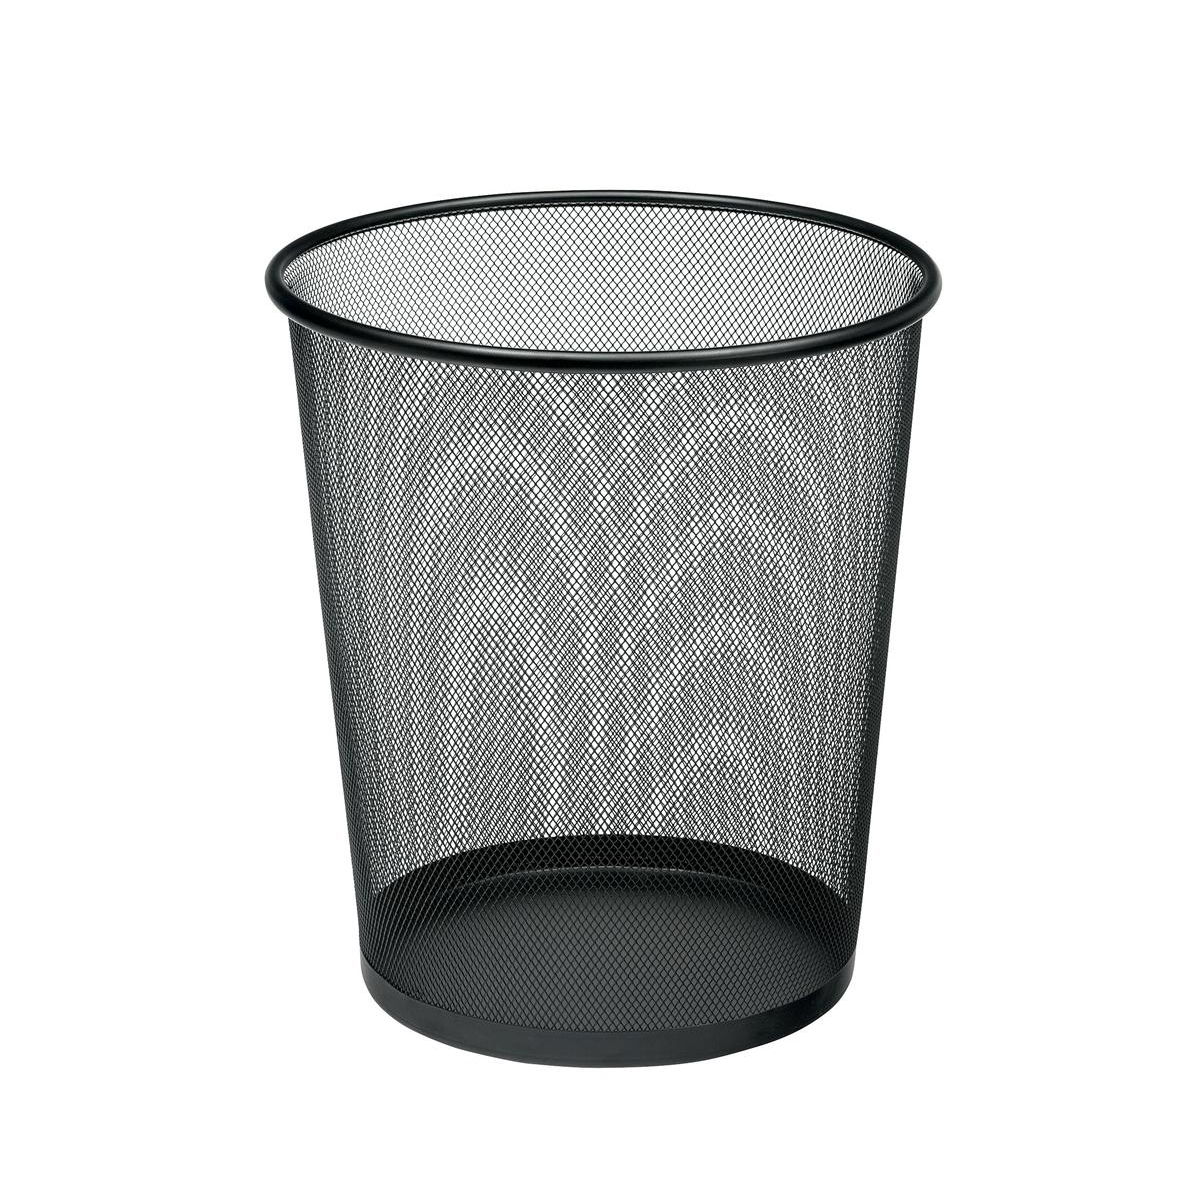 5 Star Office Mesh Waste Bin Lightweight Sturdy Scratch Resistant 15-20 Litres 275x350mm Black